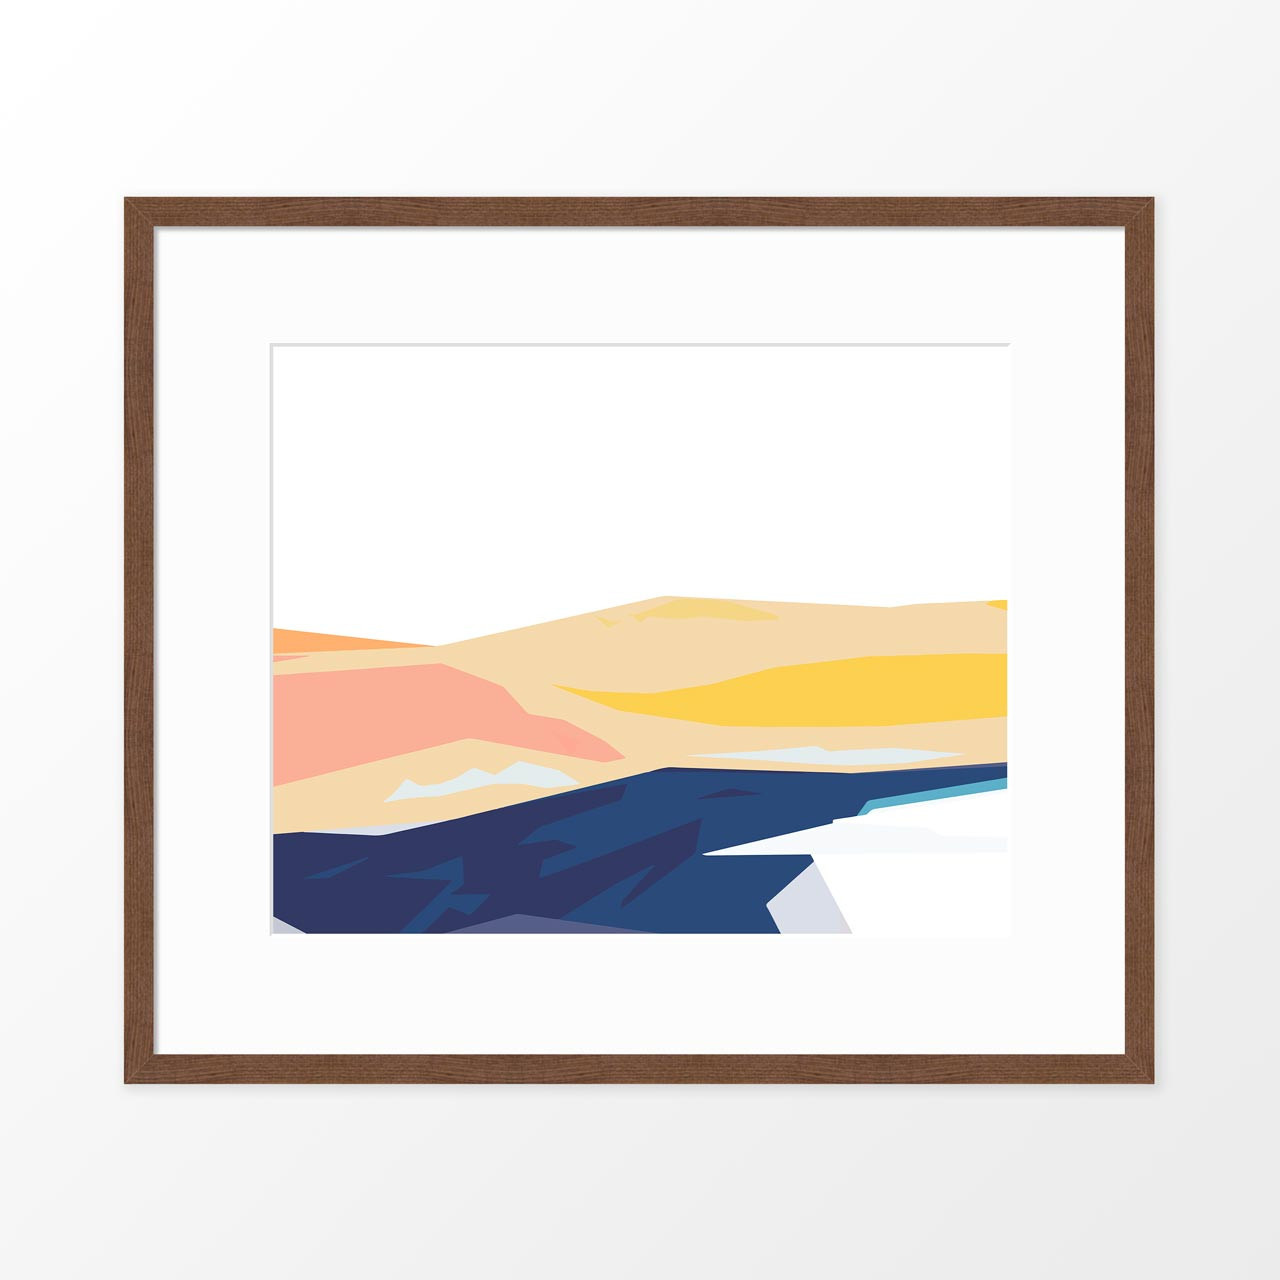 'Coastline II' Abstract Art Print from The Printed Home